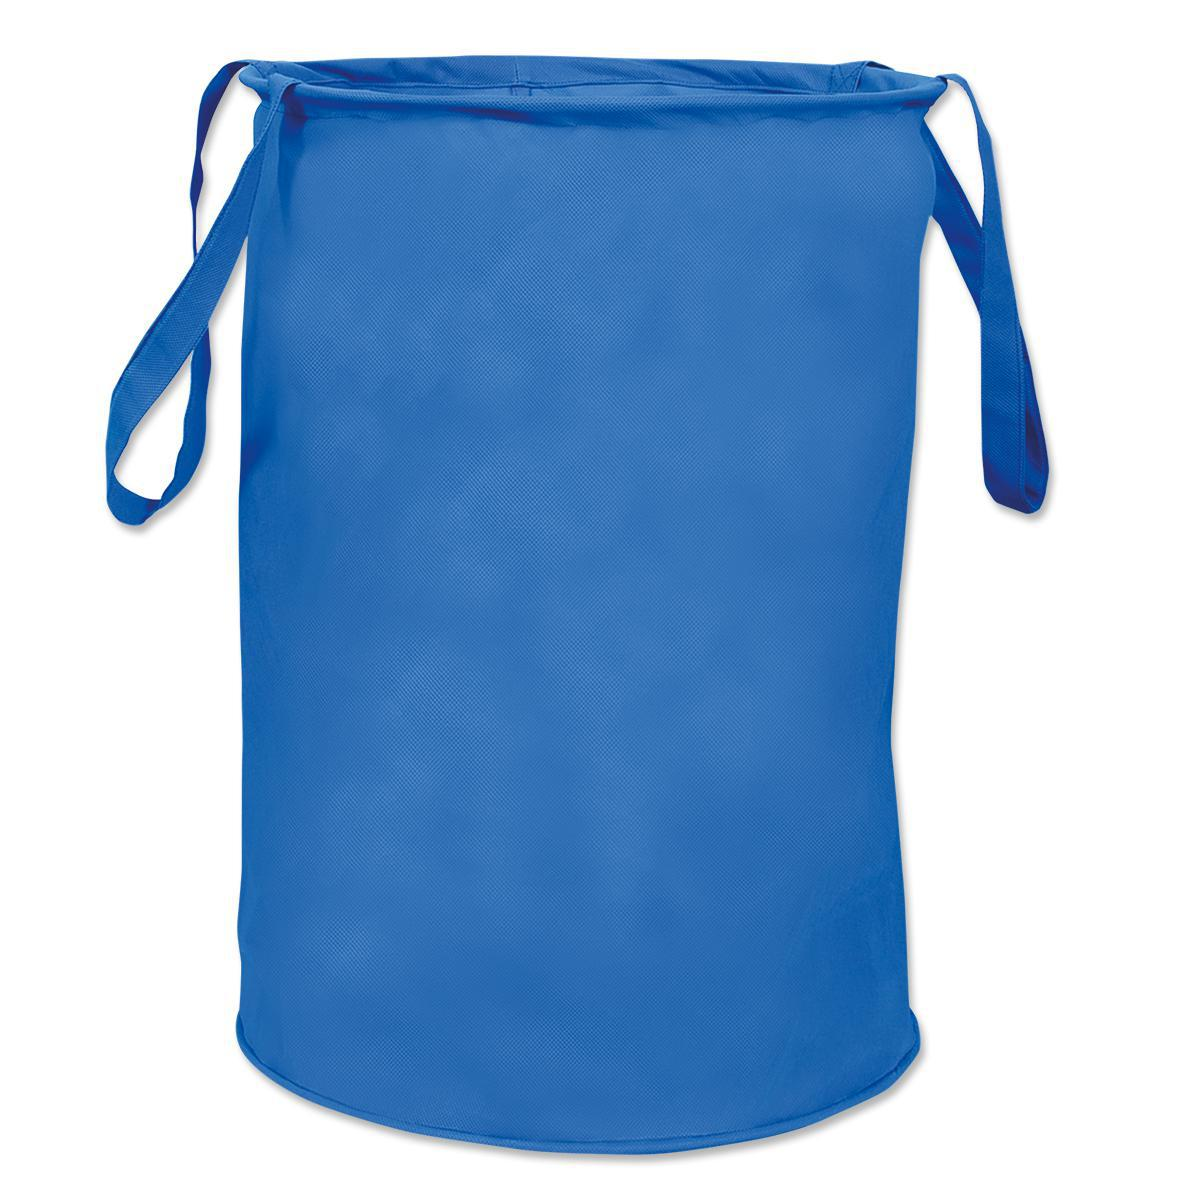 Collapsible Class Storage Bag